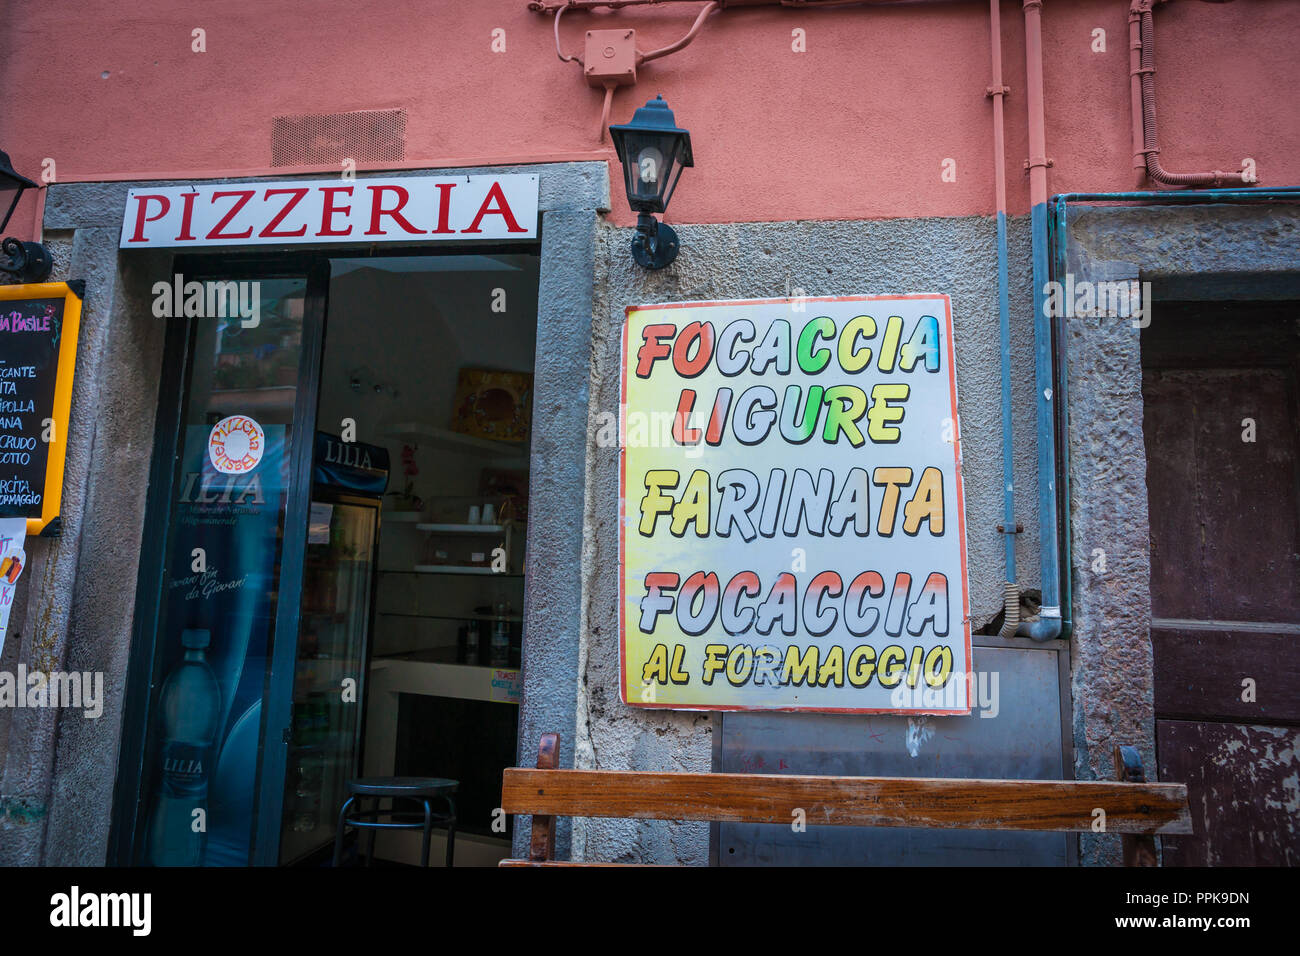 RIOMAGGIORE ITALY - APRIL 26 2011; Italian village typical pizzeria food shop signage  advertising different offerings - Stock Image